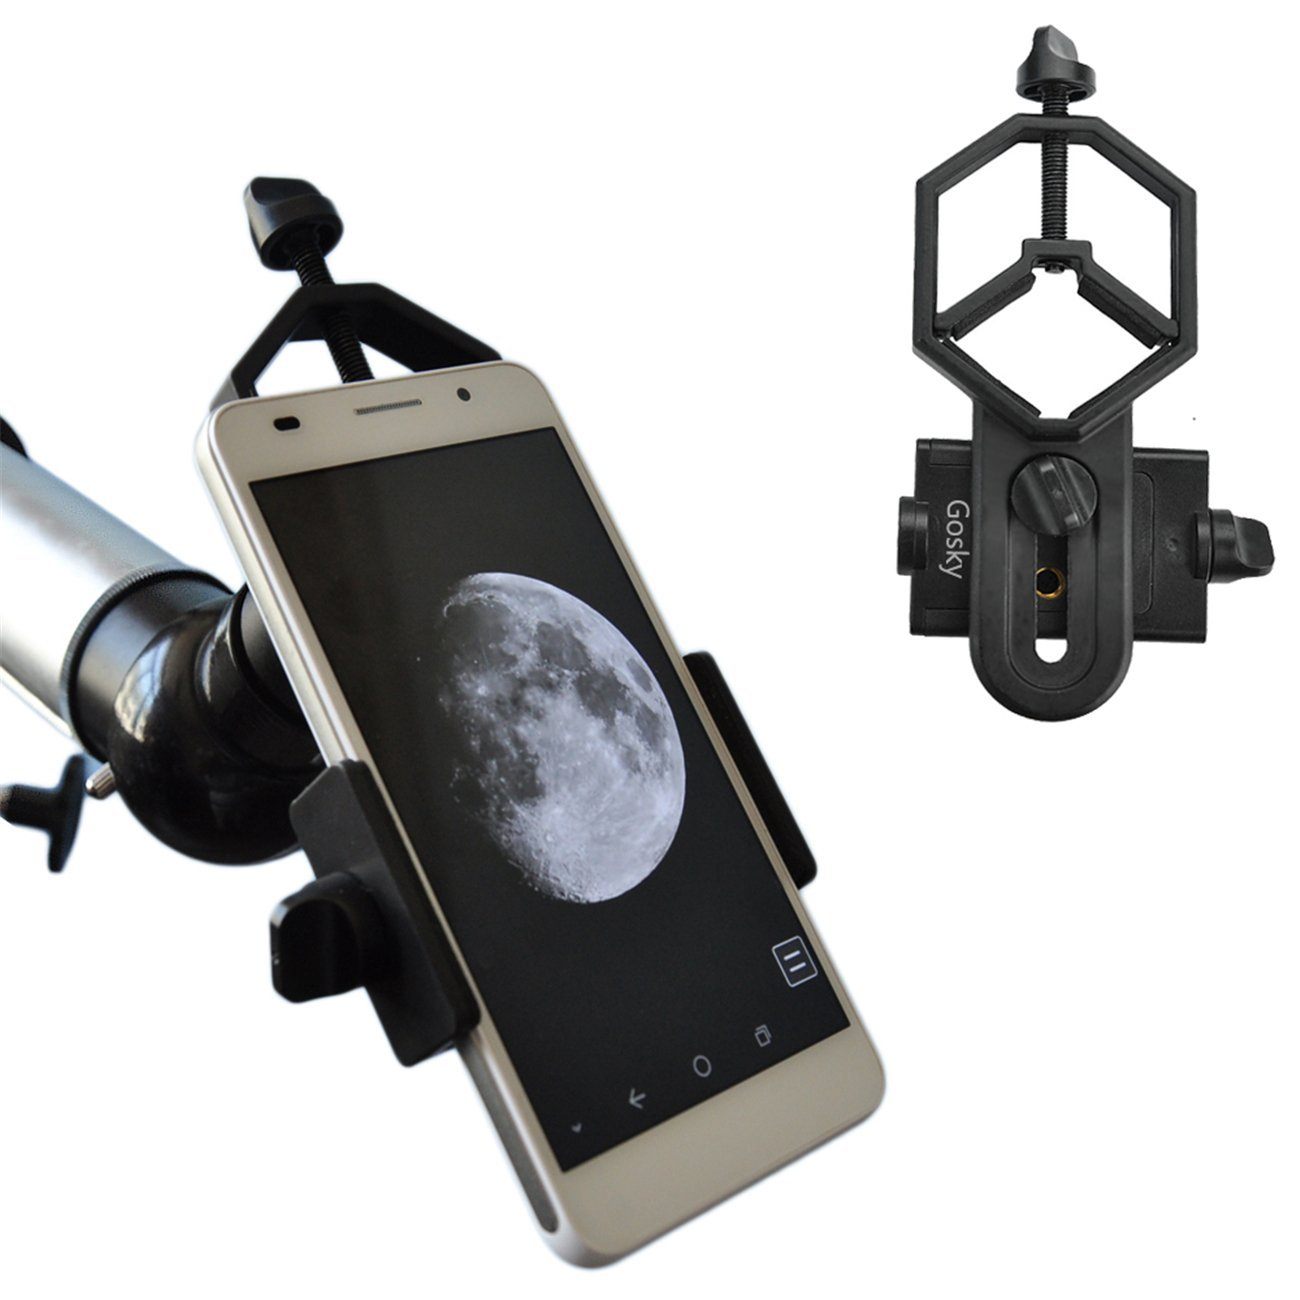 Gosky Universal Smartphone Adapter Mount - Microscopy is getting more innovative!